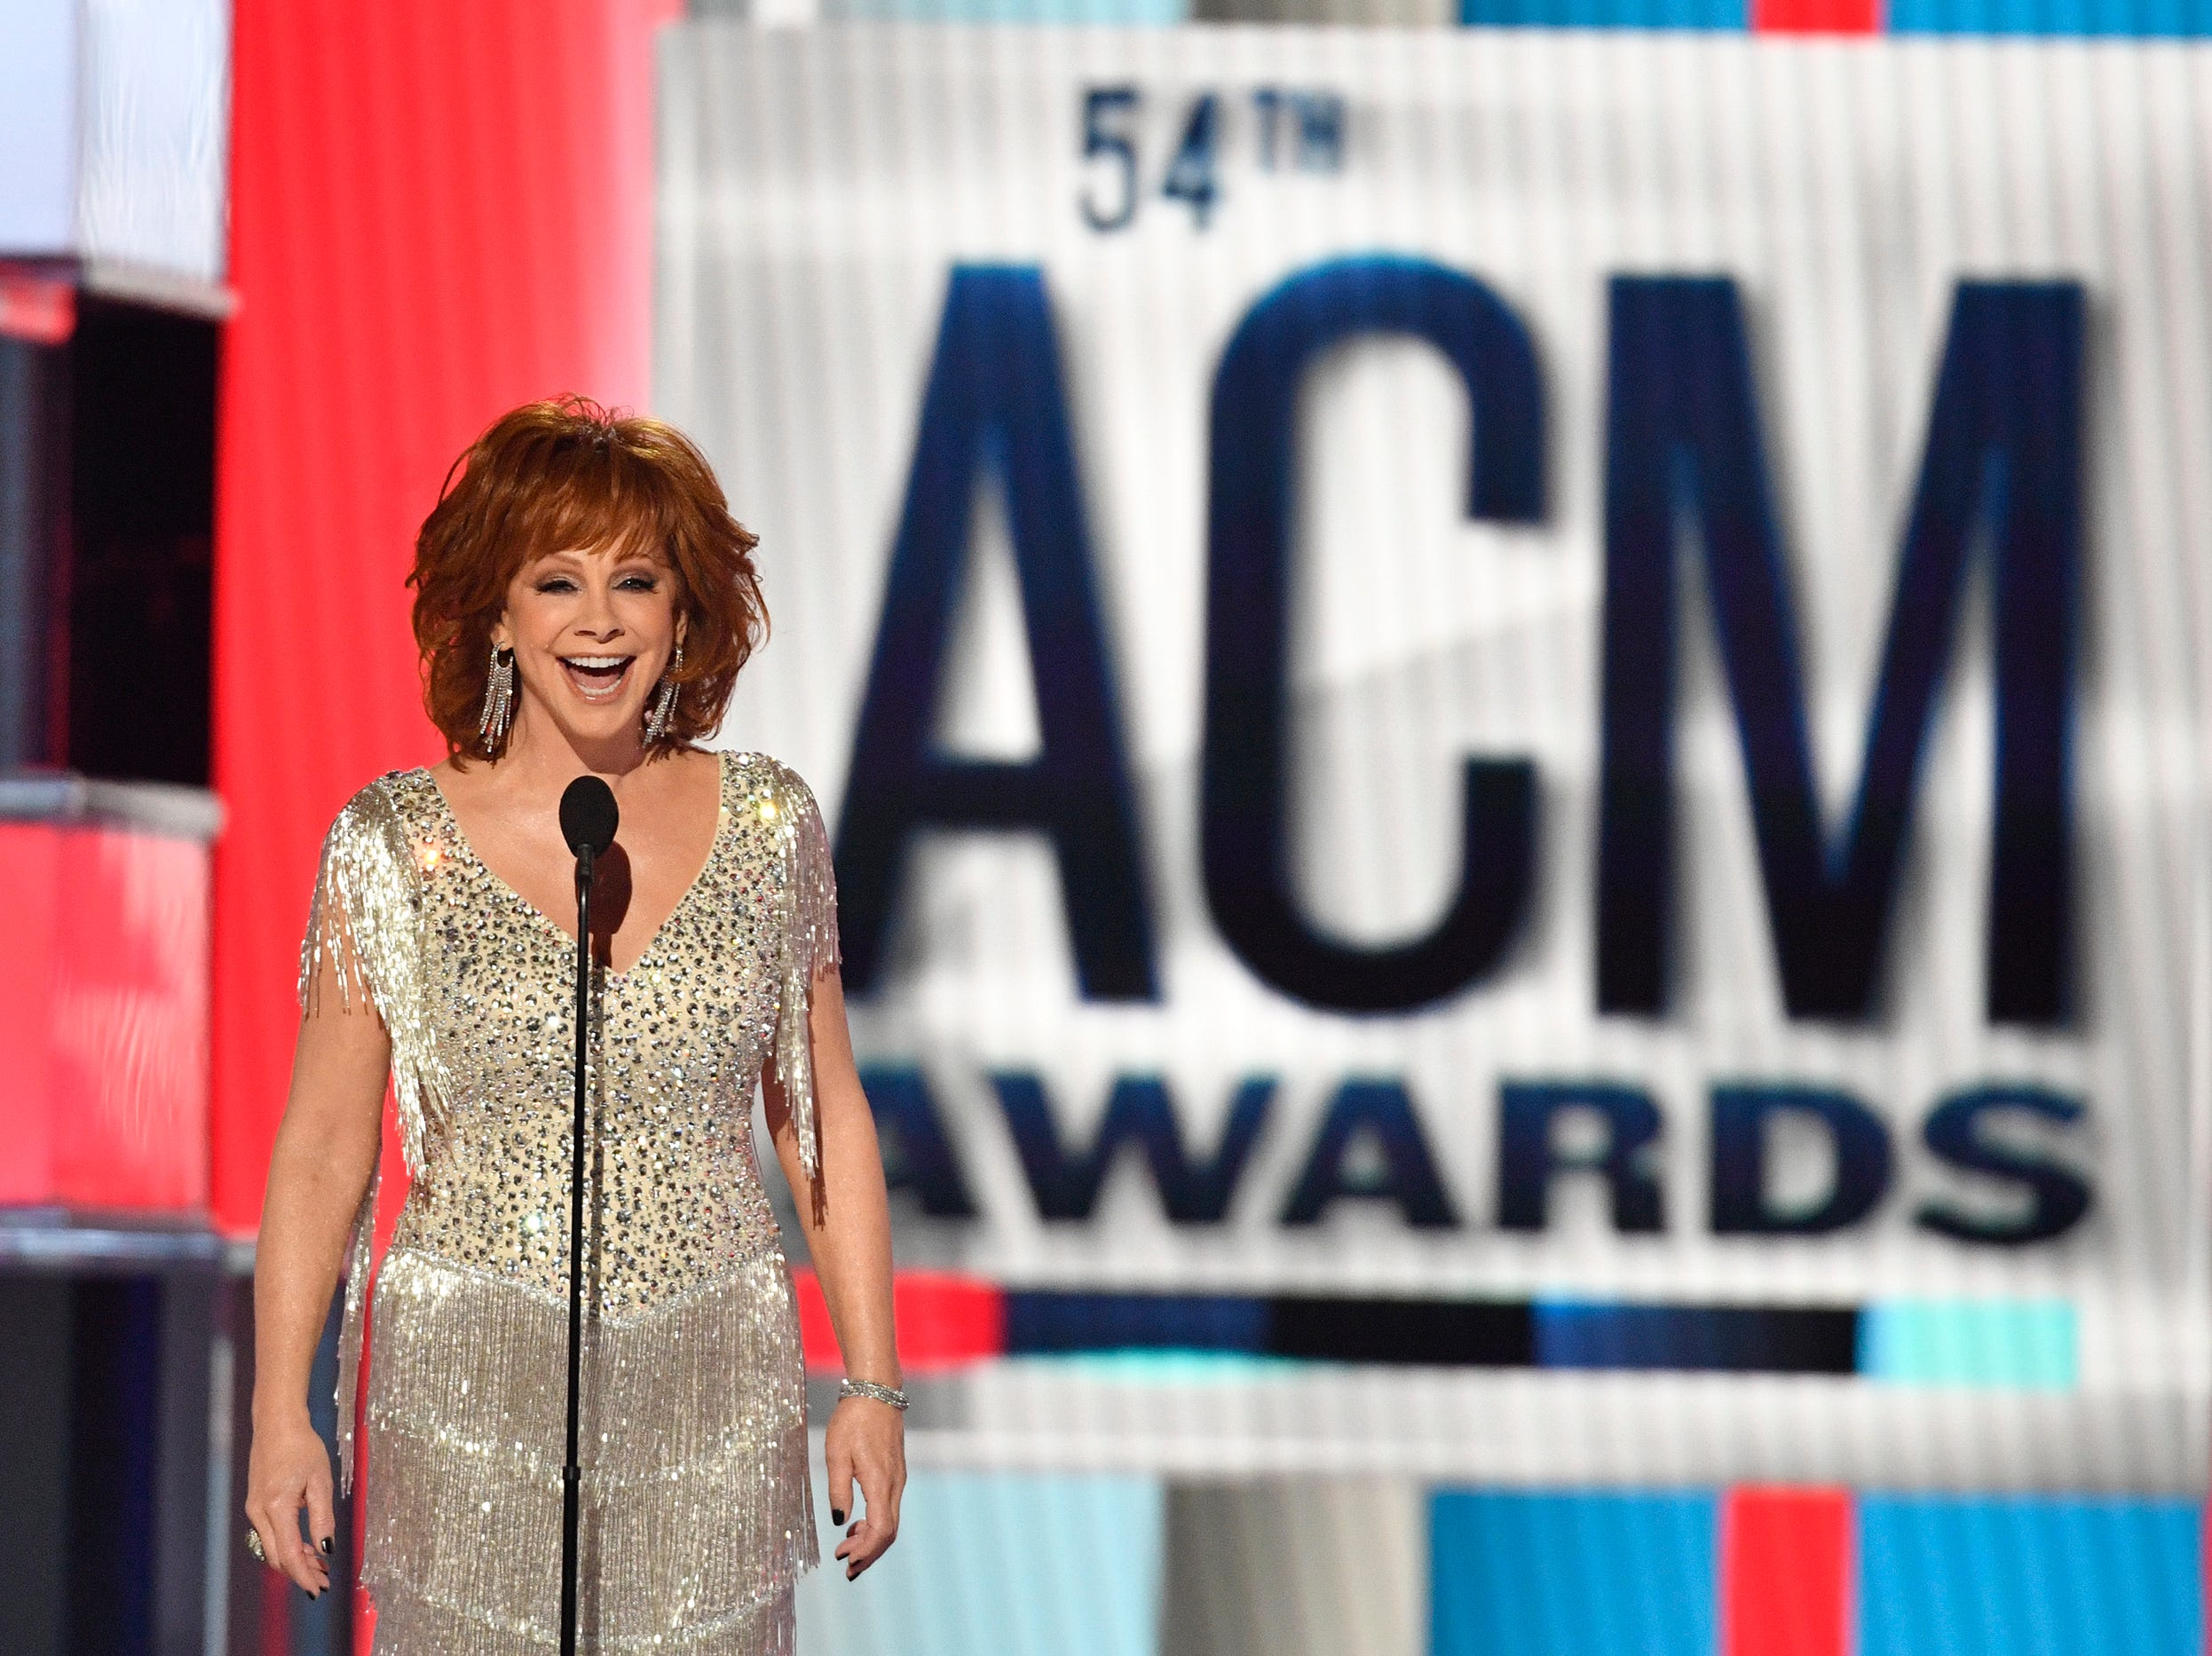 Host Reba McEntire speaks during the 54th Academy of Country Music Awards on Sunday, April 7, 2019, in Las Vegas.